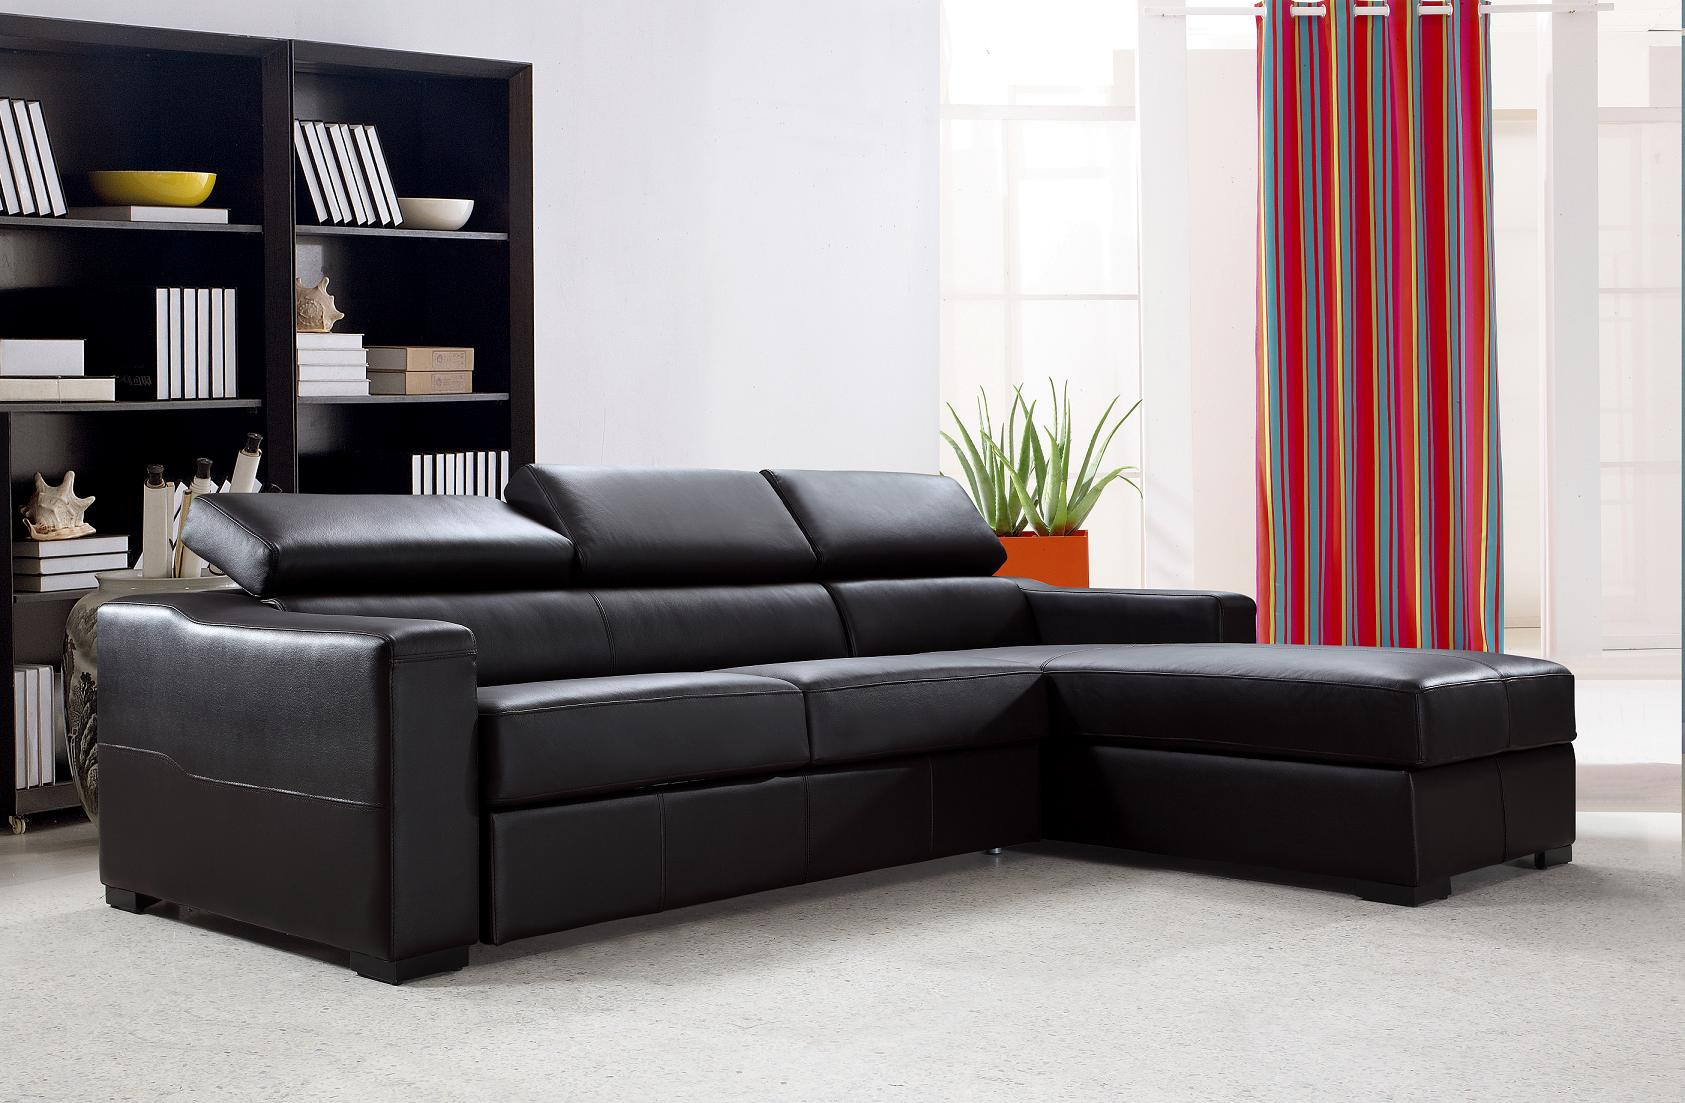 Best ideas about Sofa Bed Sectional . Save or Pin Flip Reversible Espresso Leather Sectional Sofa Bed w Storage Now.